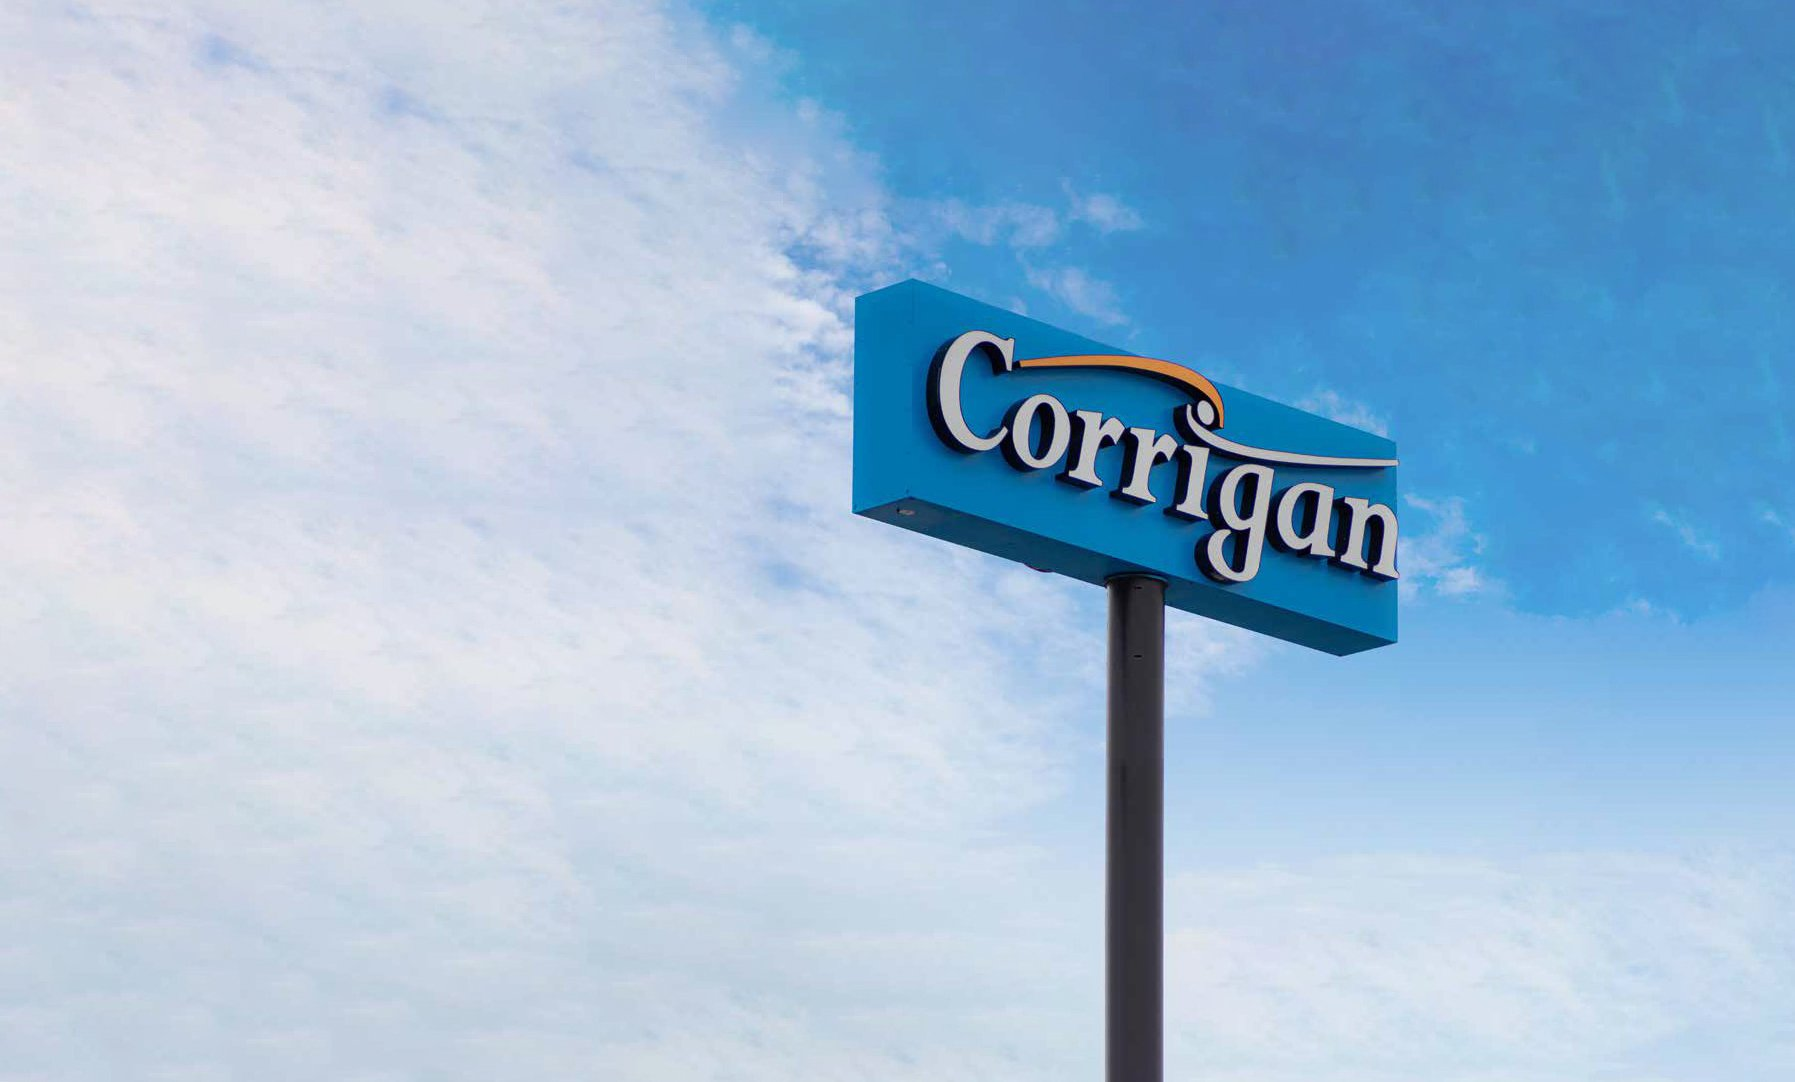 Corrigan - Channel Letter Pole Sign edit-2